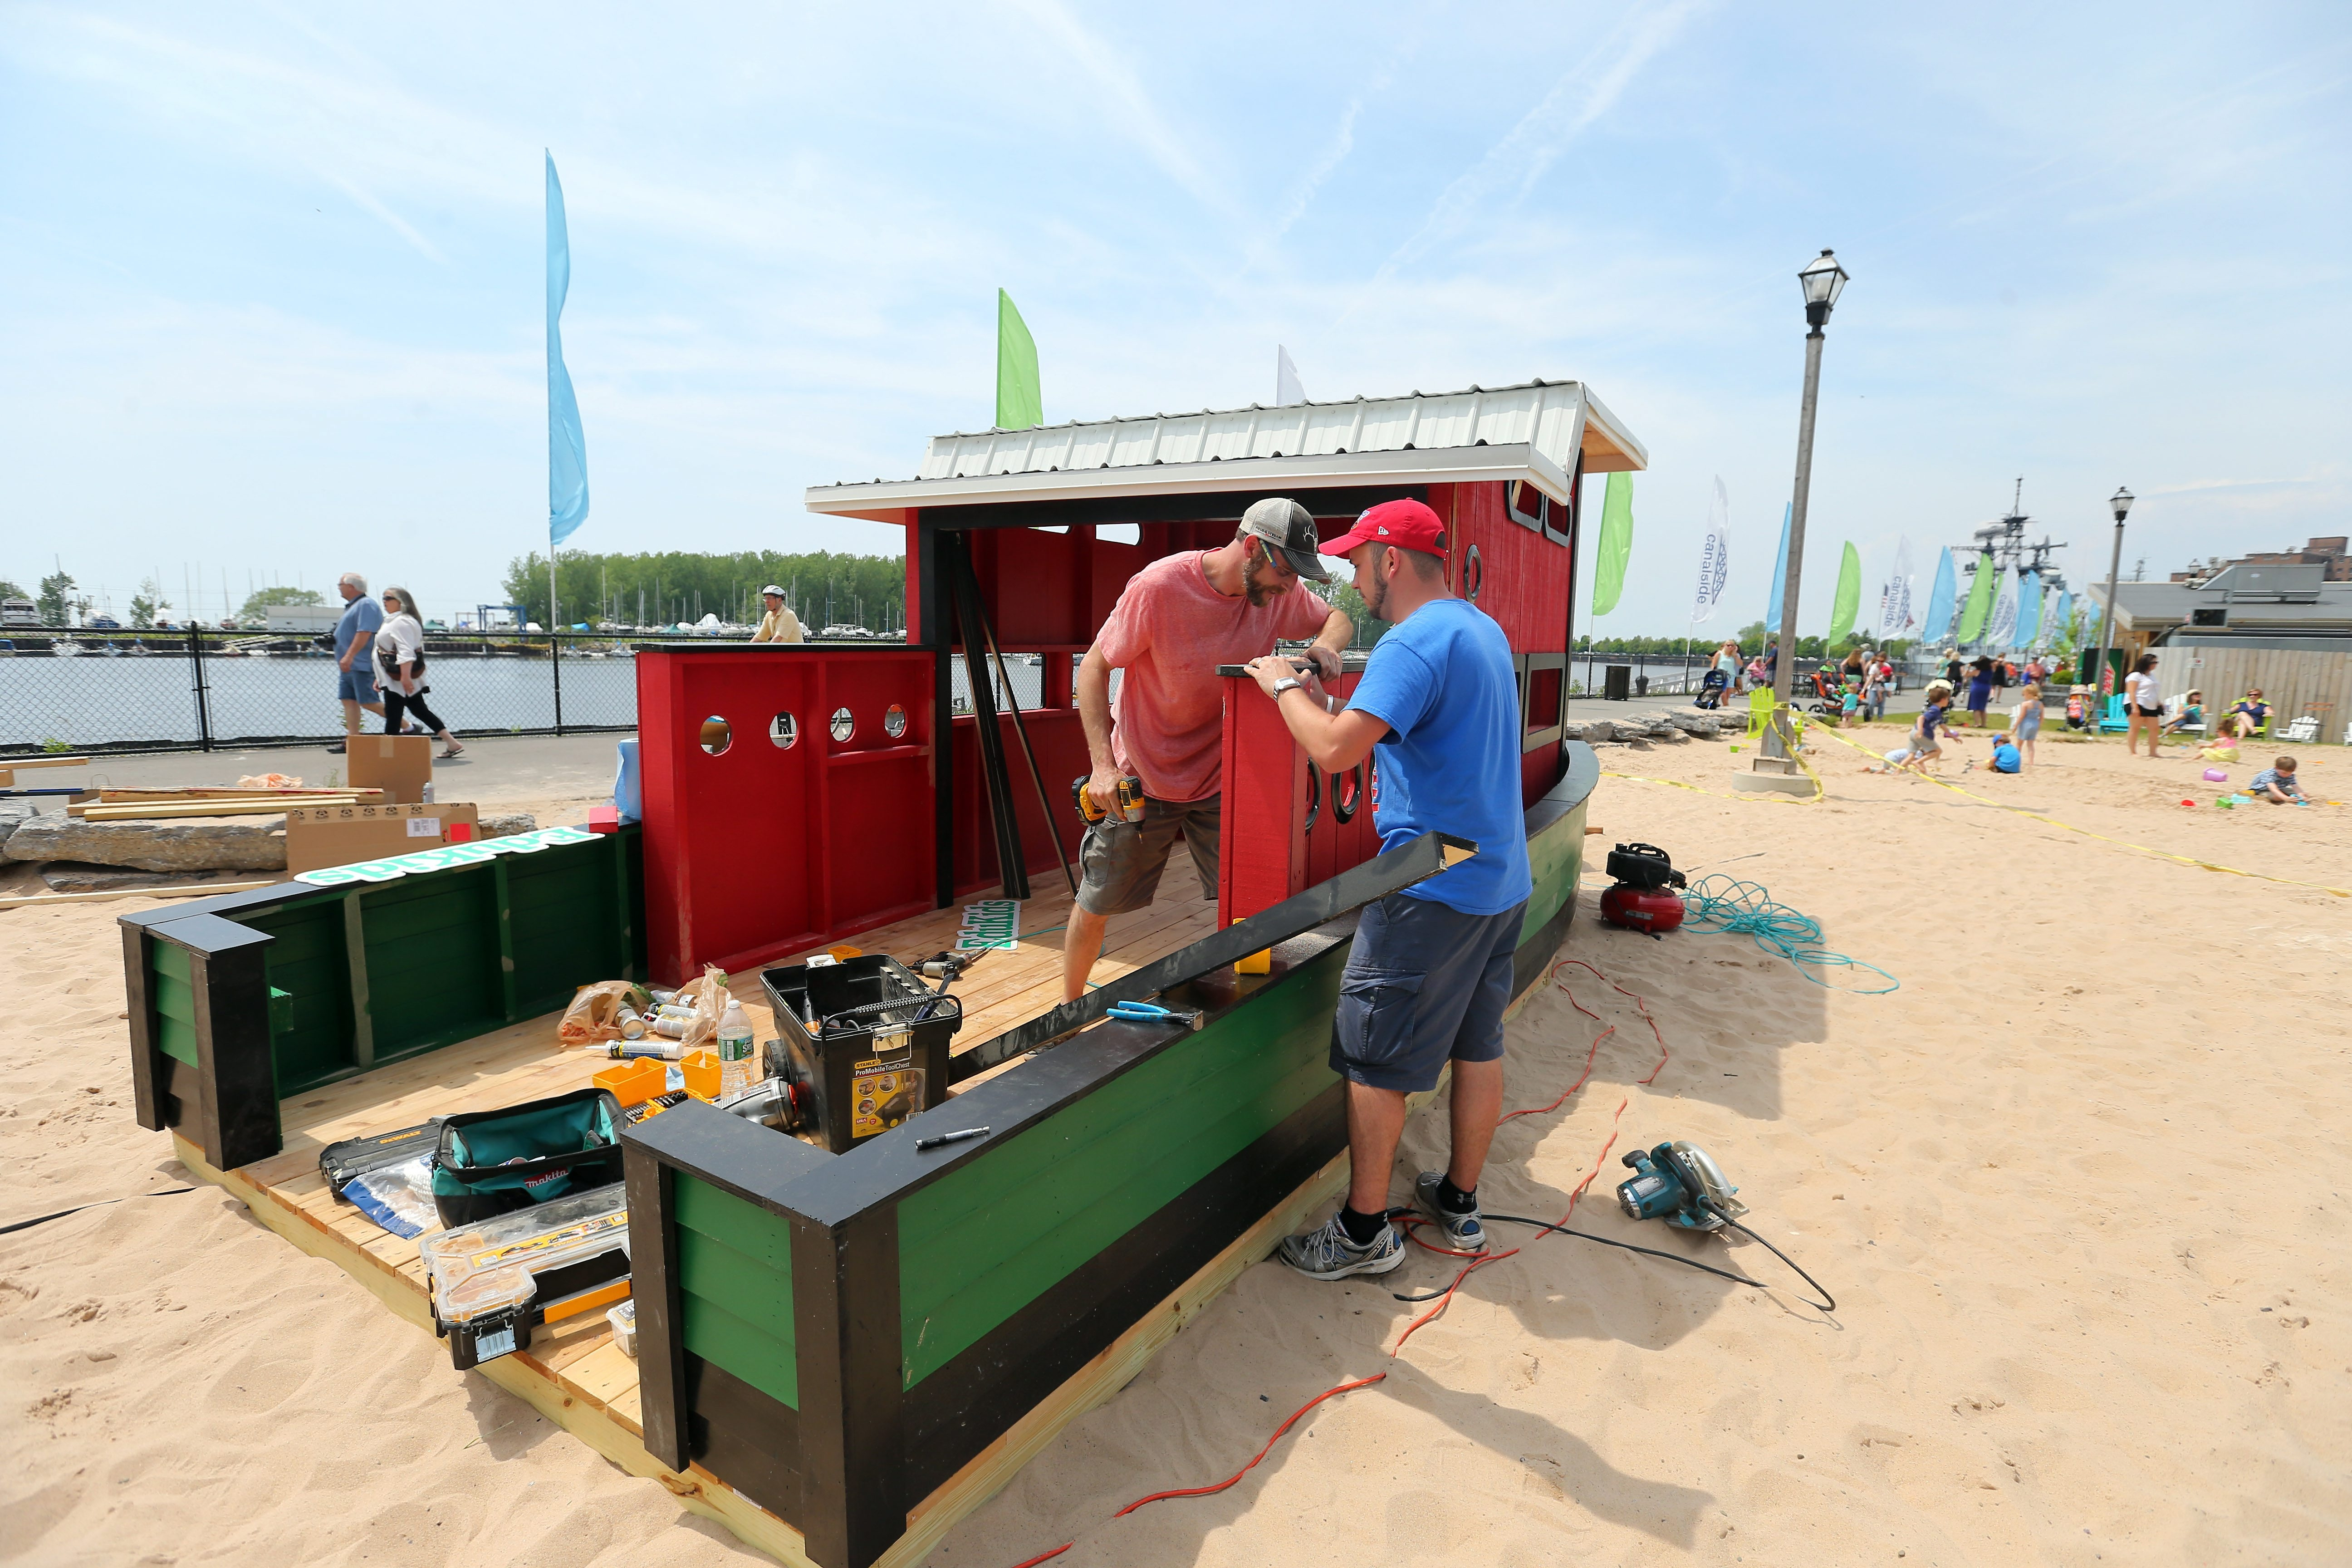 John Clavette, left, and Aaron Quinn, right, build a tugboat play structure at the children's beach at Canalside in Buffalo on June 5.